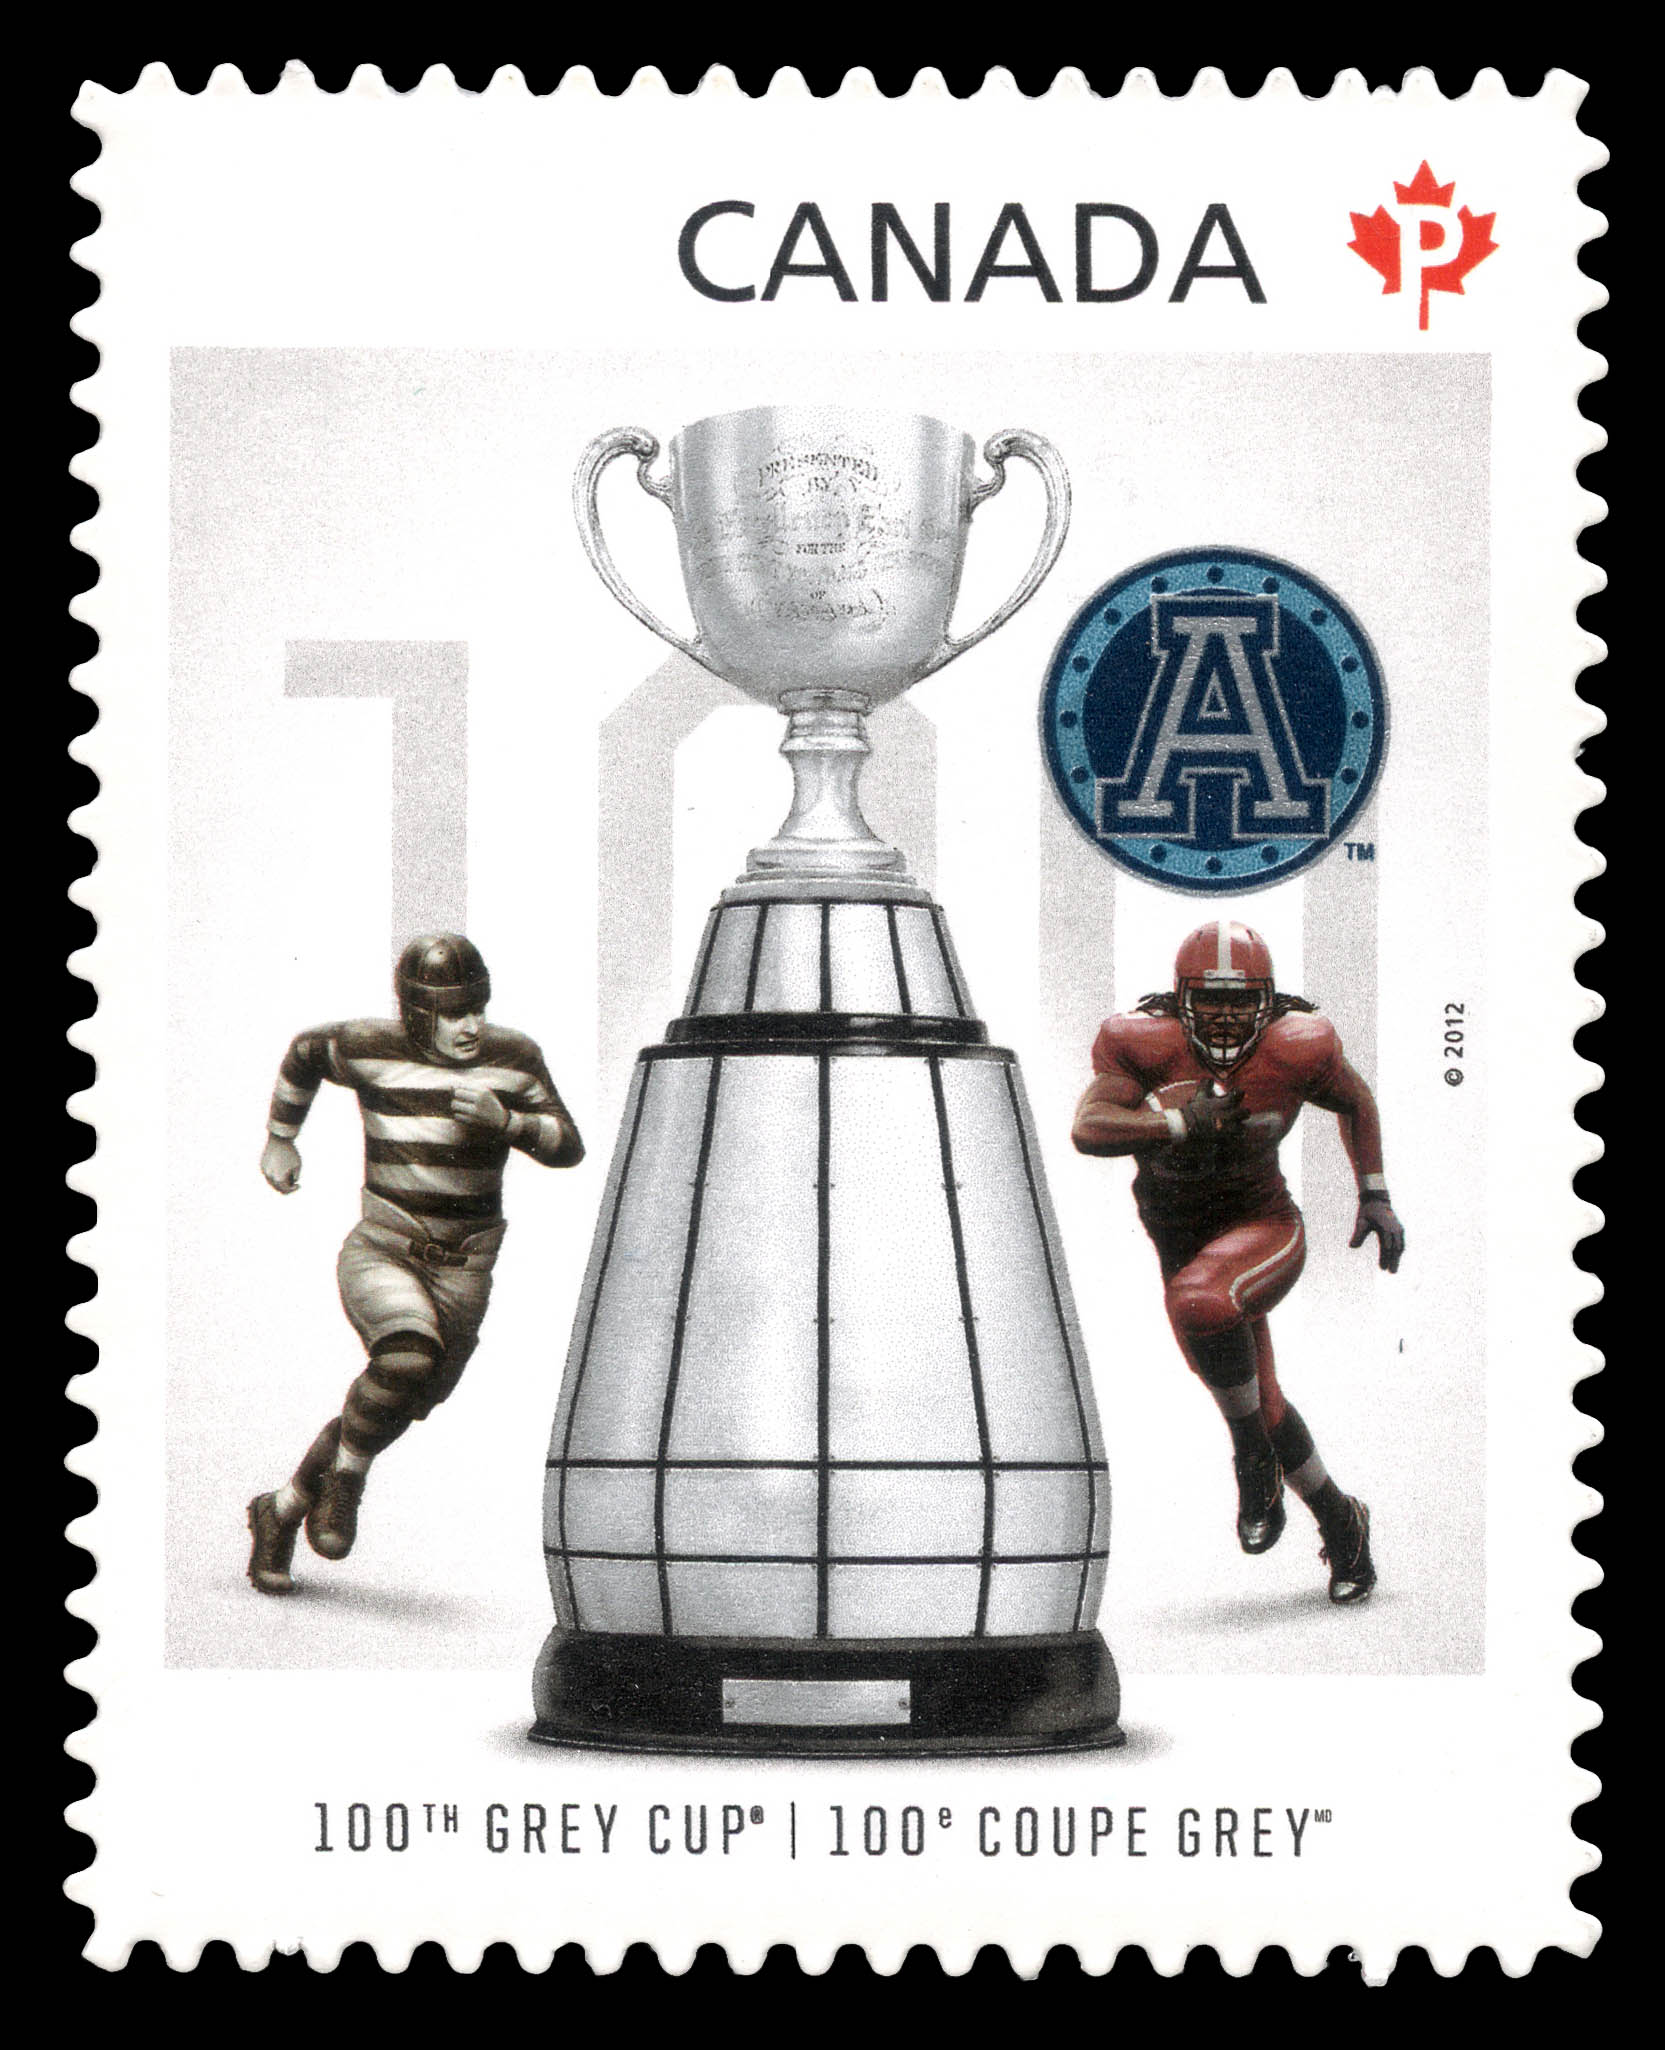 Toronto Argonauts - Winners of the 100th Grey Cup Game Canada Postage Stamp | 100th Grey Cup Game